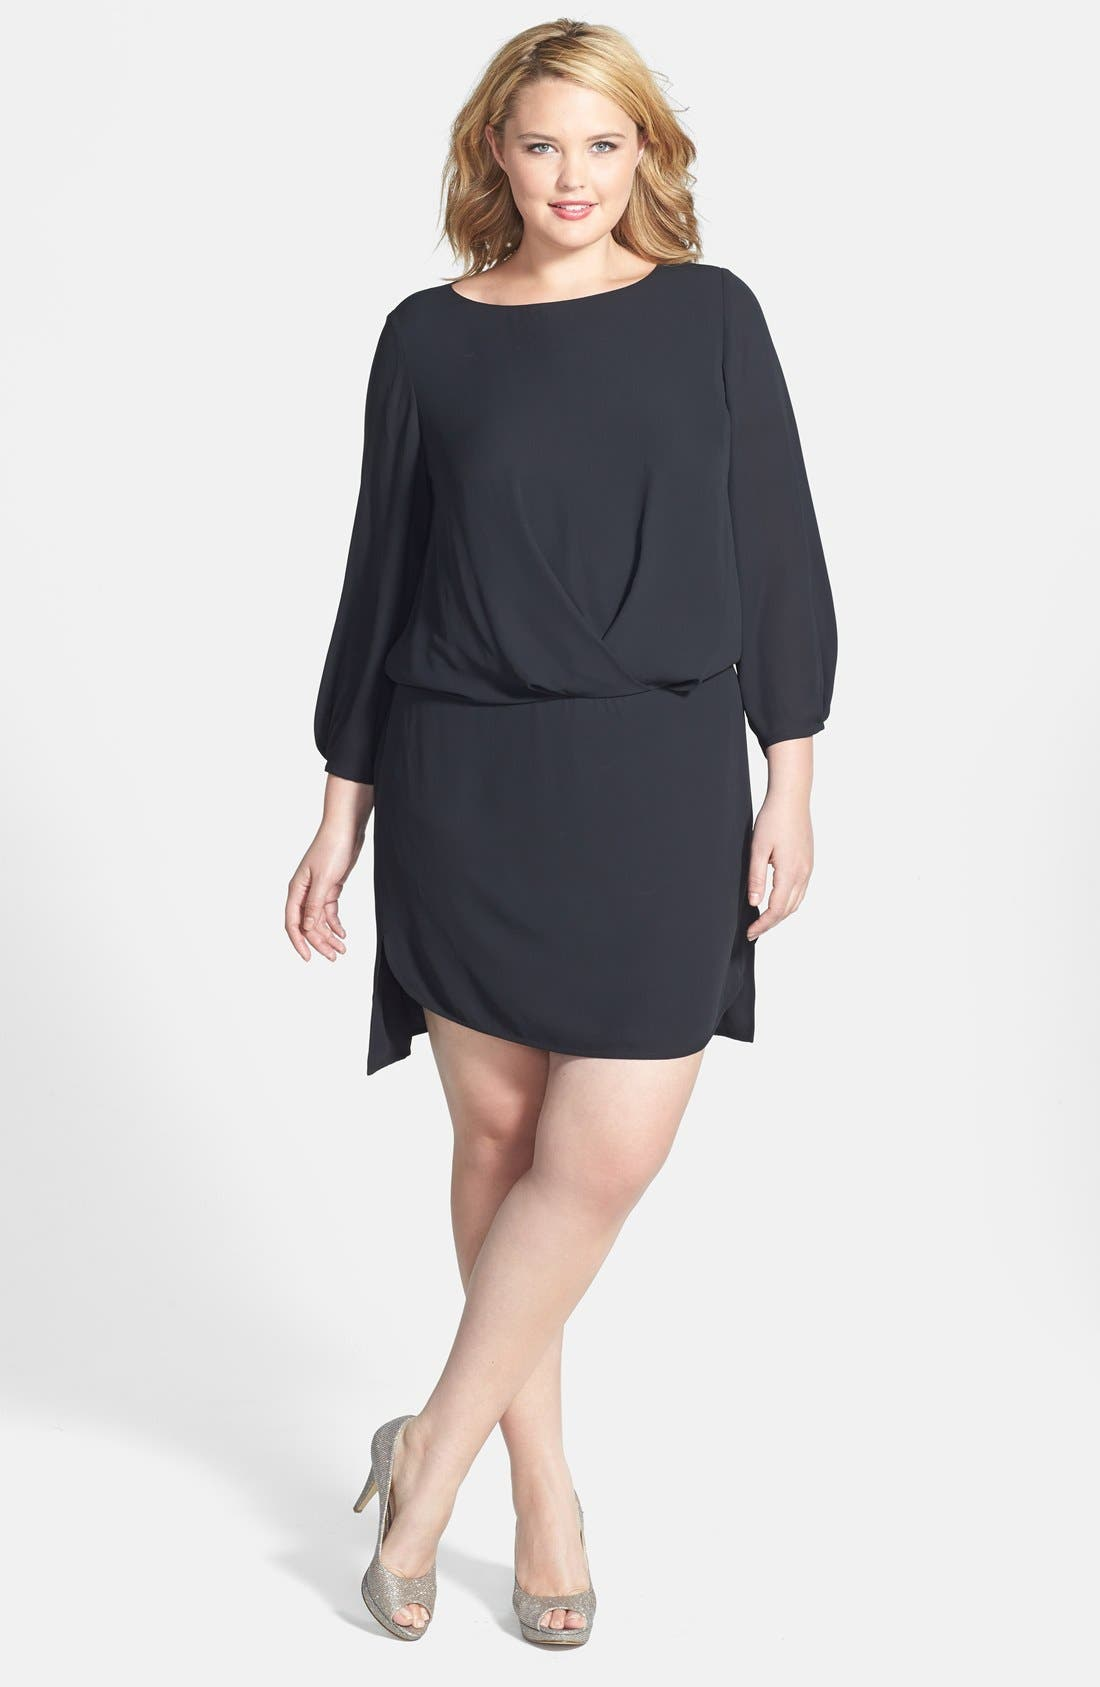 Main Image - Vince Camuto 'Center Fold' Dress (Plus Size)